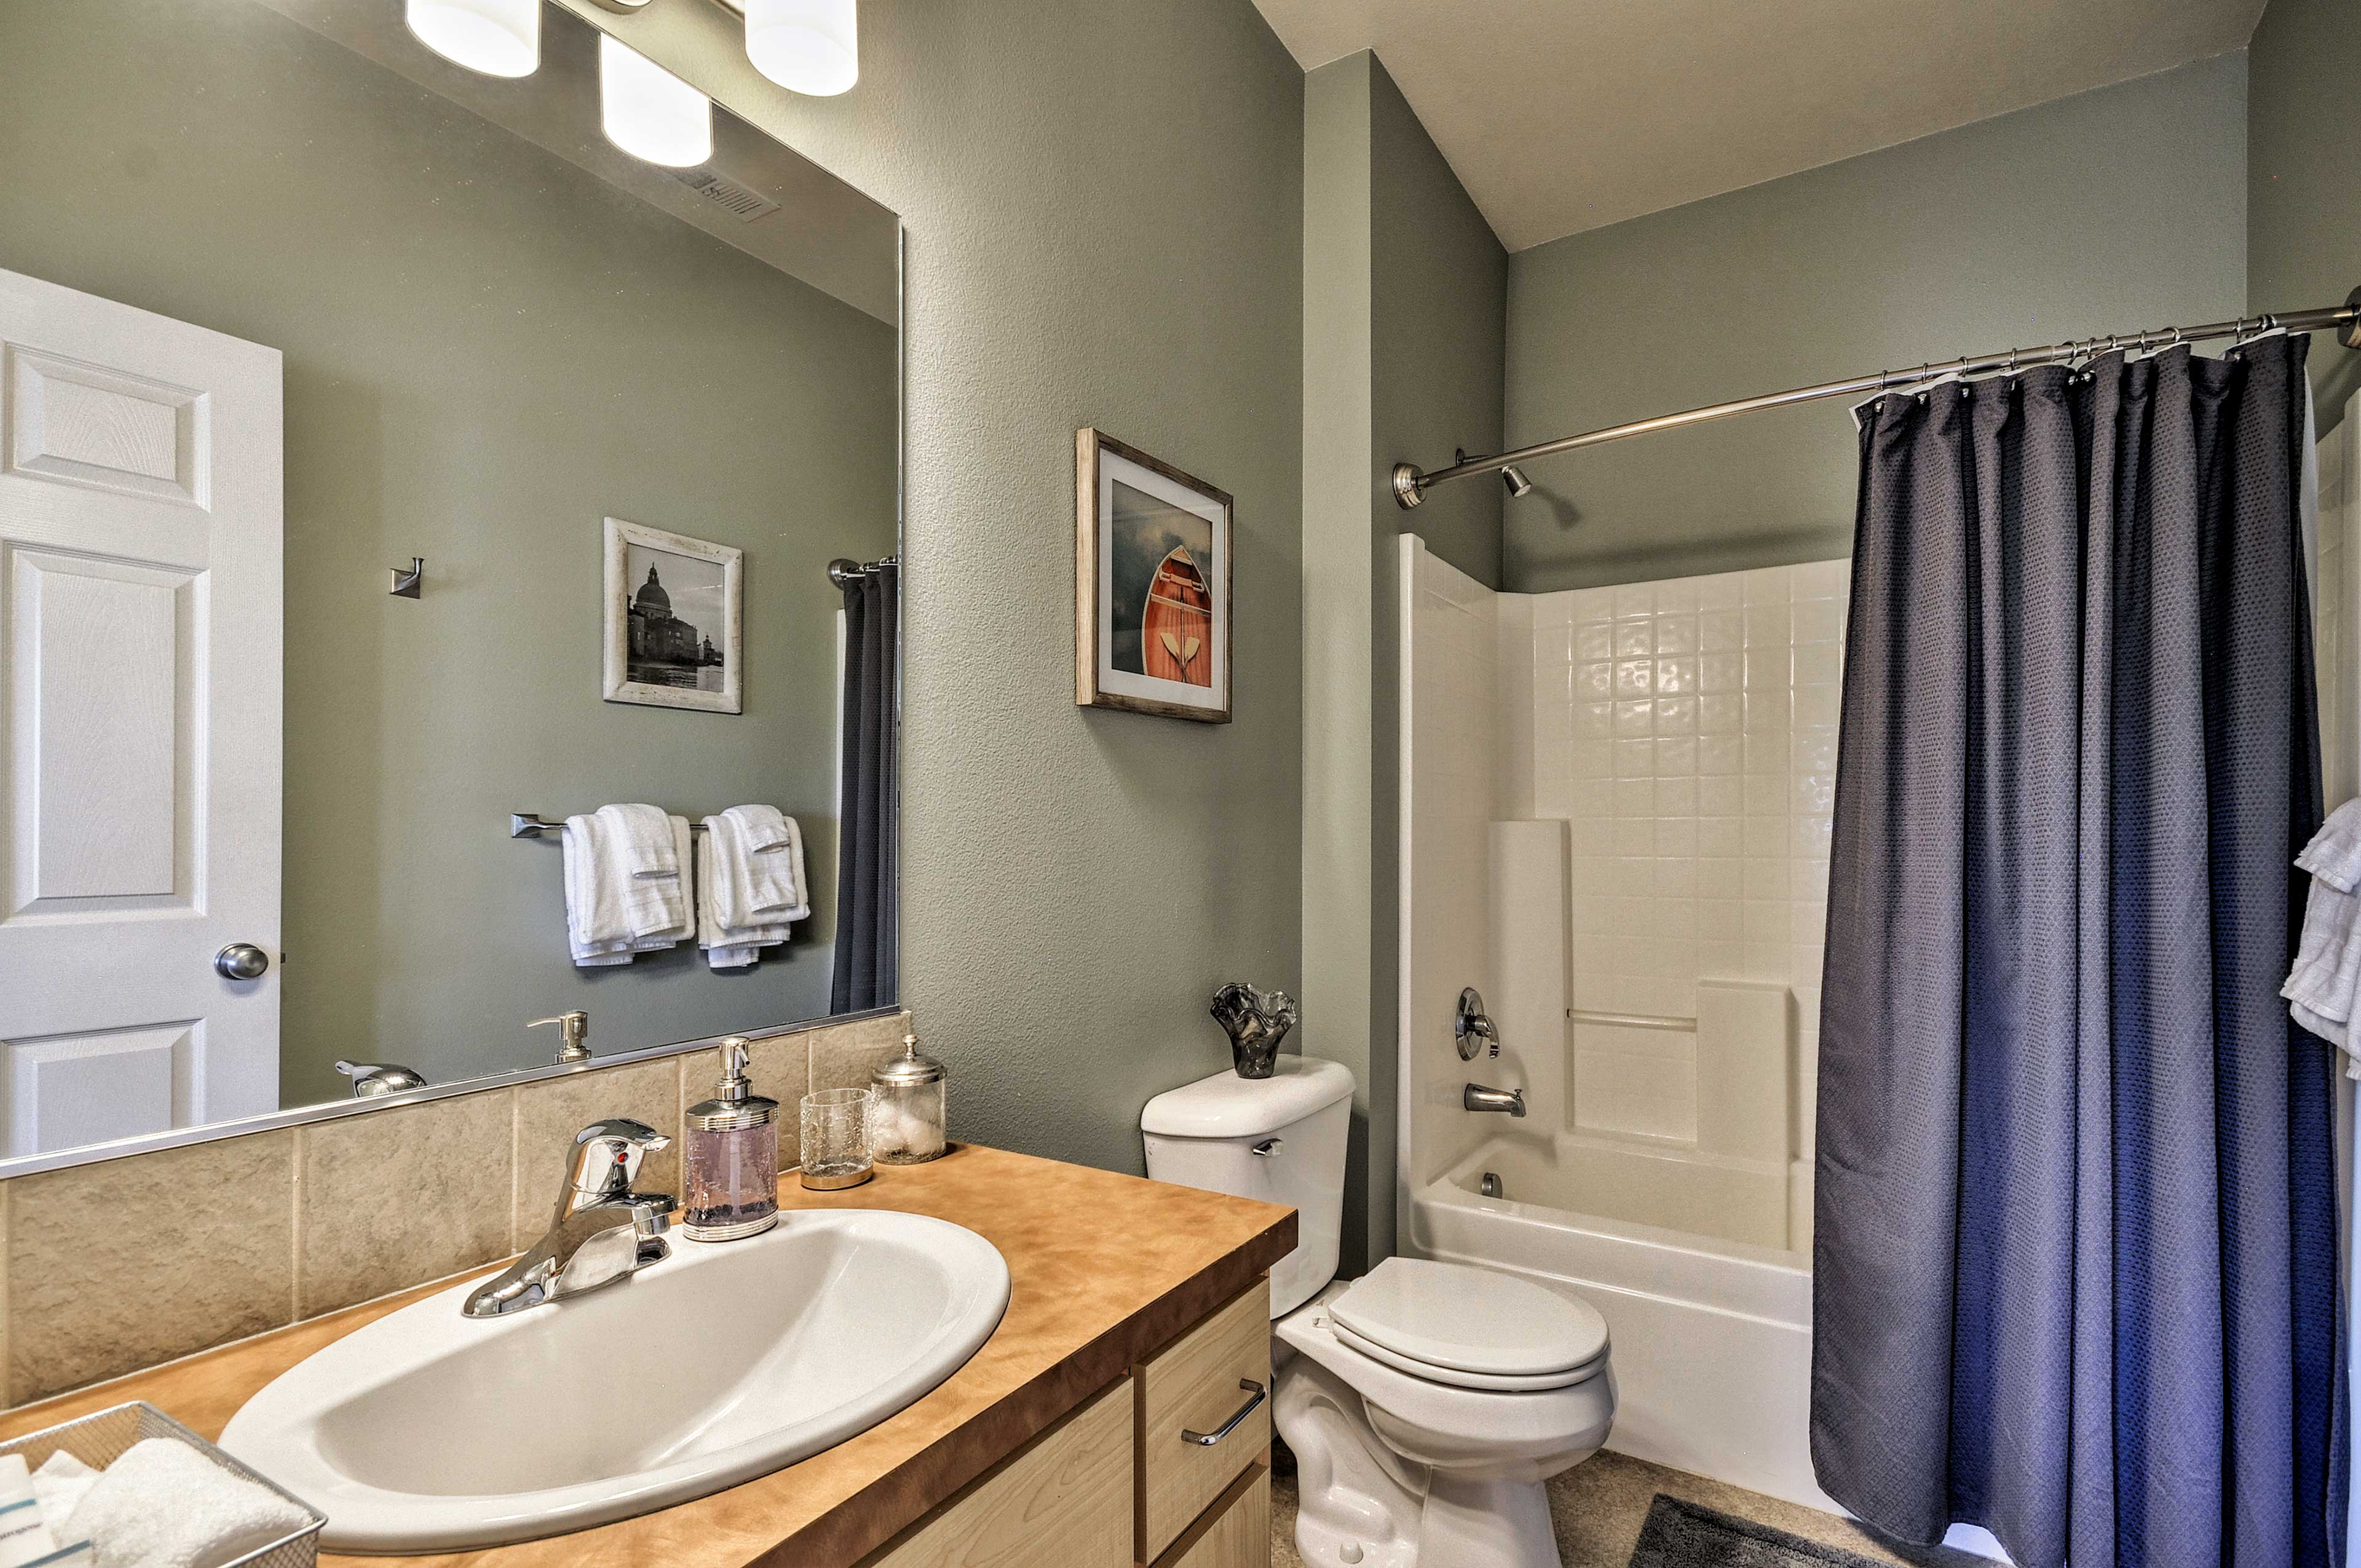 In the en-suite bath, you will find a shower/tub combo.